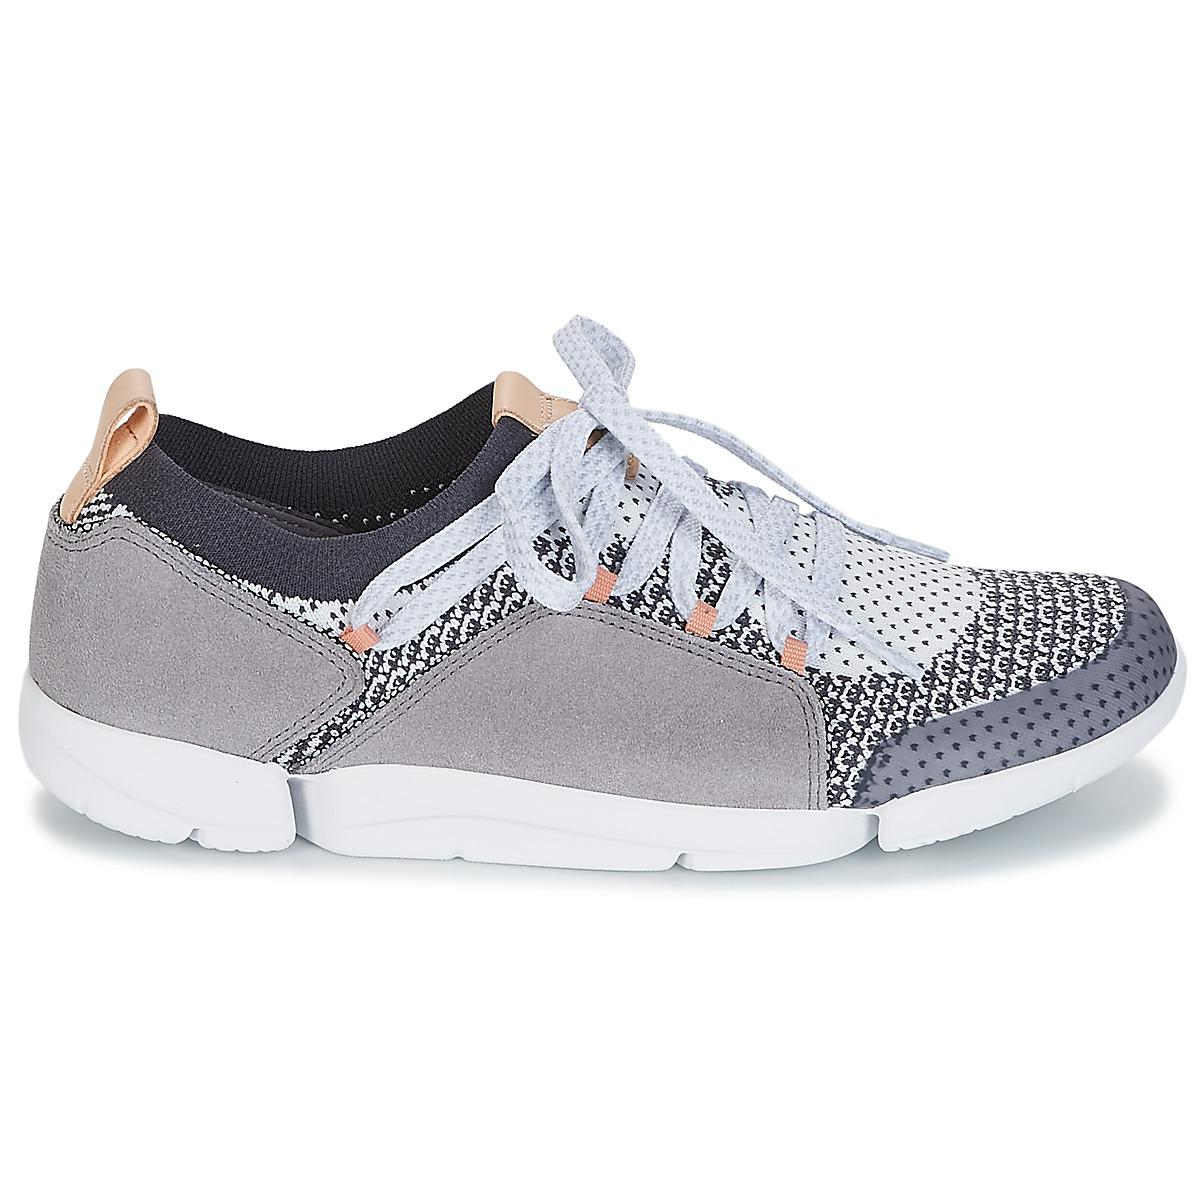 bf1ab36470e4f Clarks - Gray Tri Amelia Women s Shoes (trainers) In Grey - Lyst. View  fullscreen